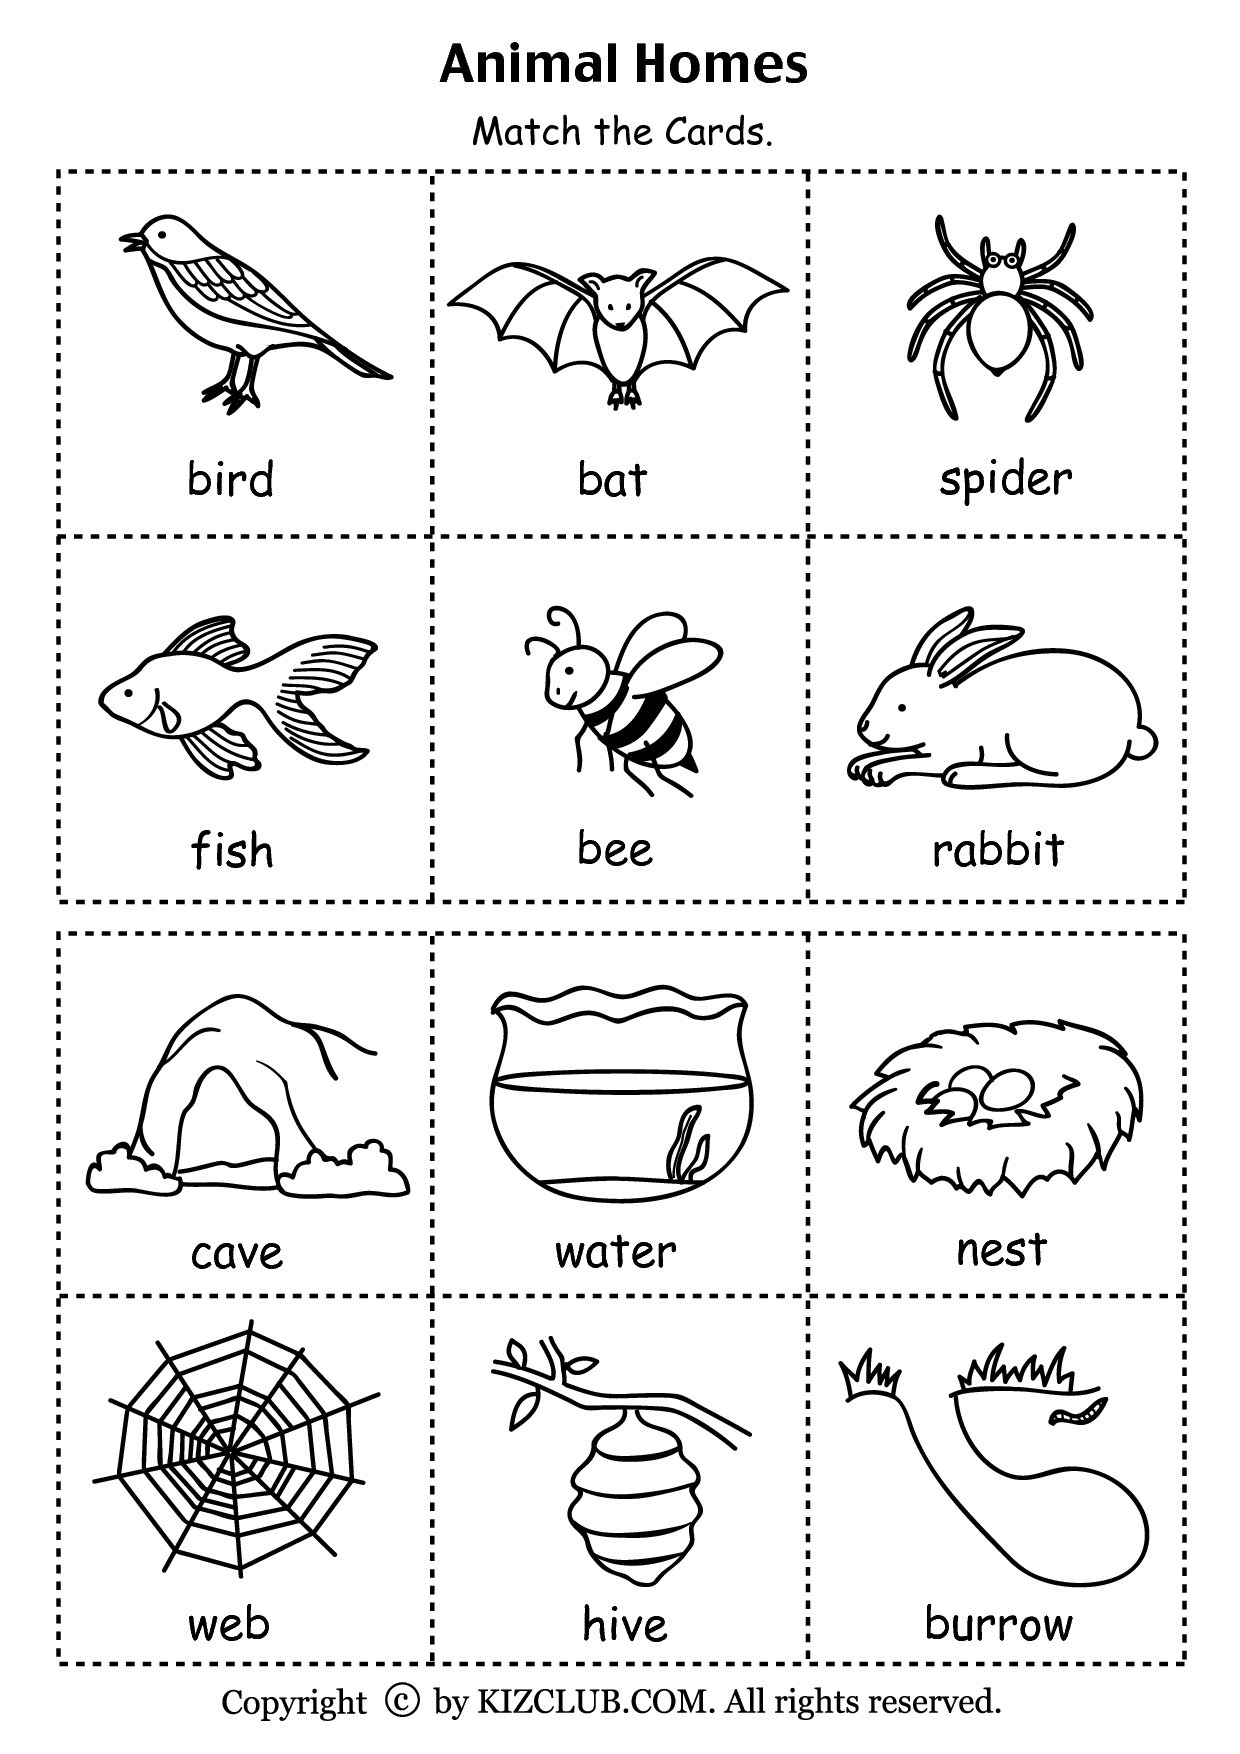 3rd Grade Habitat Worksheets Animal Habitat sort Worksheet